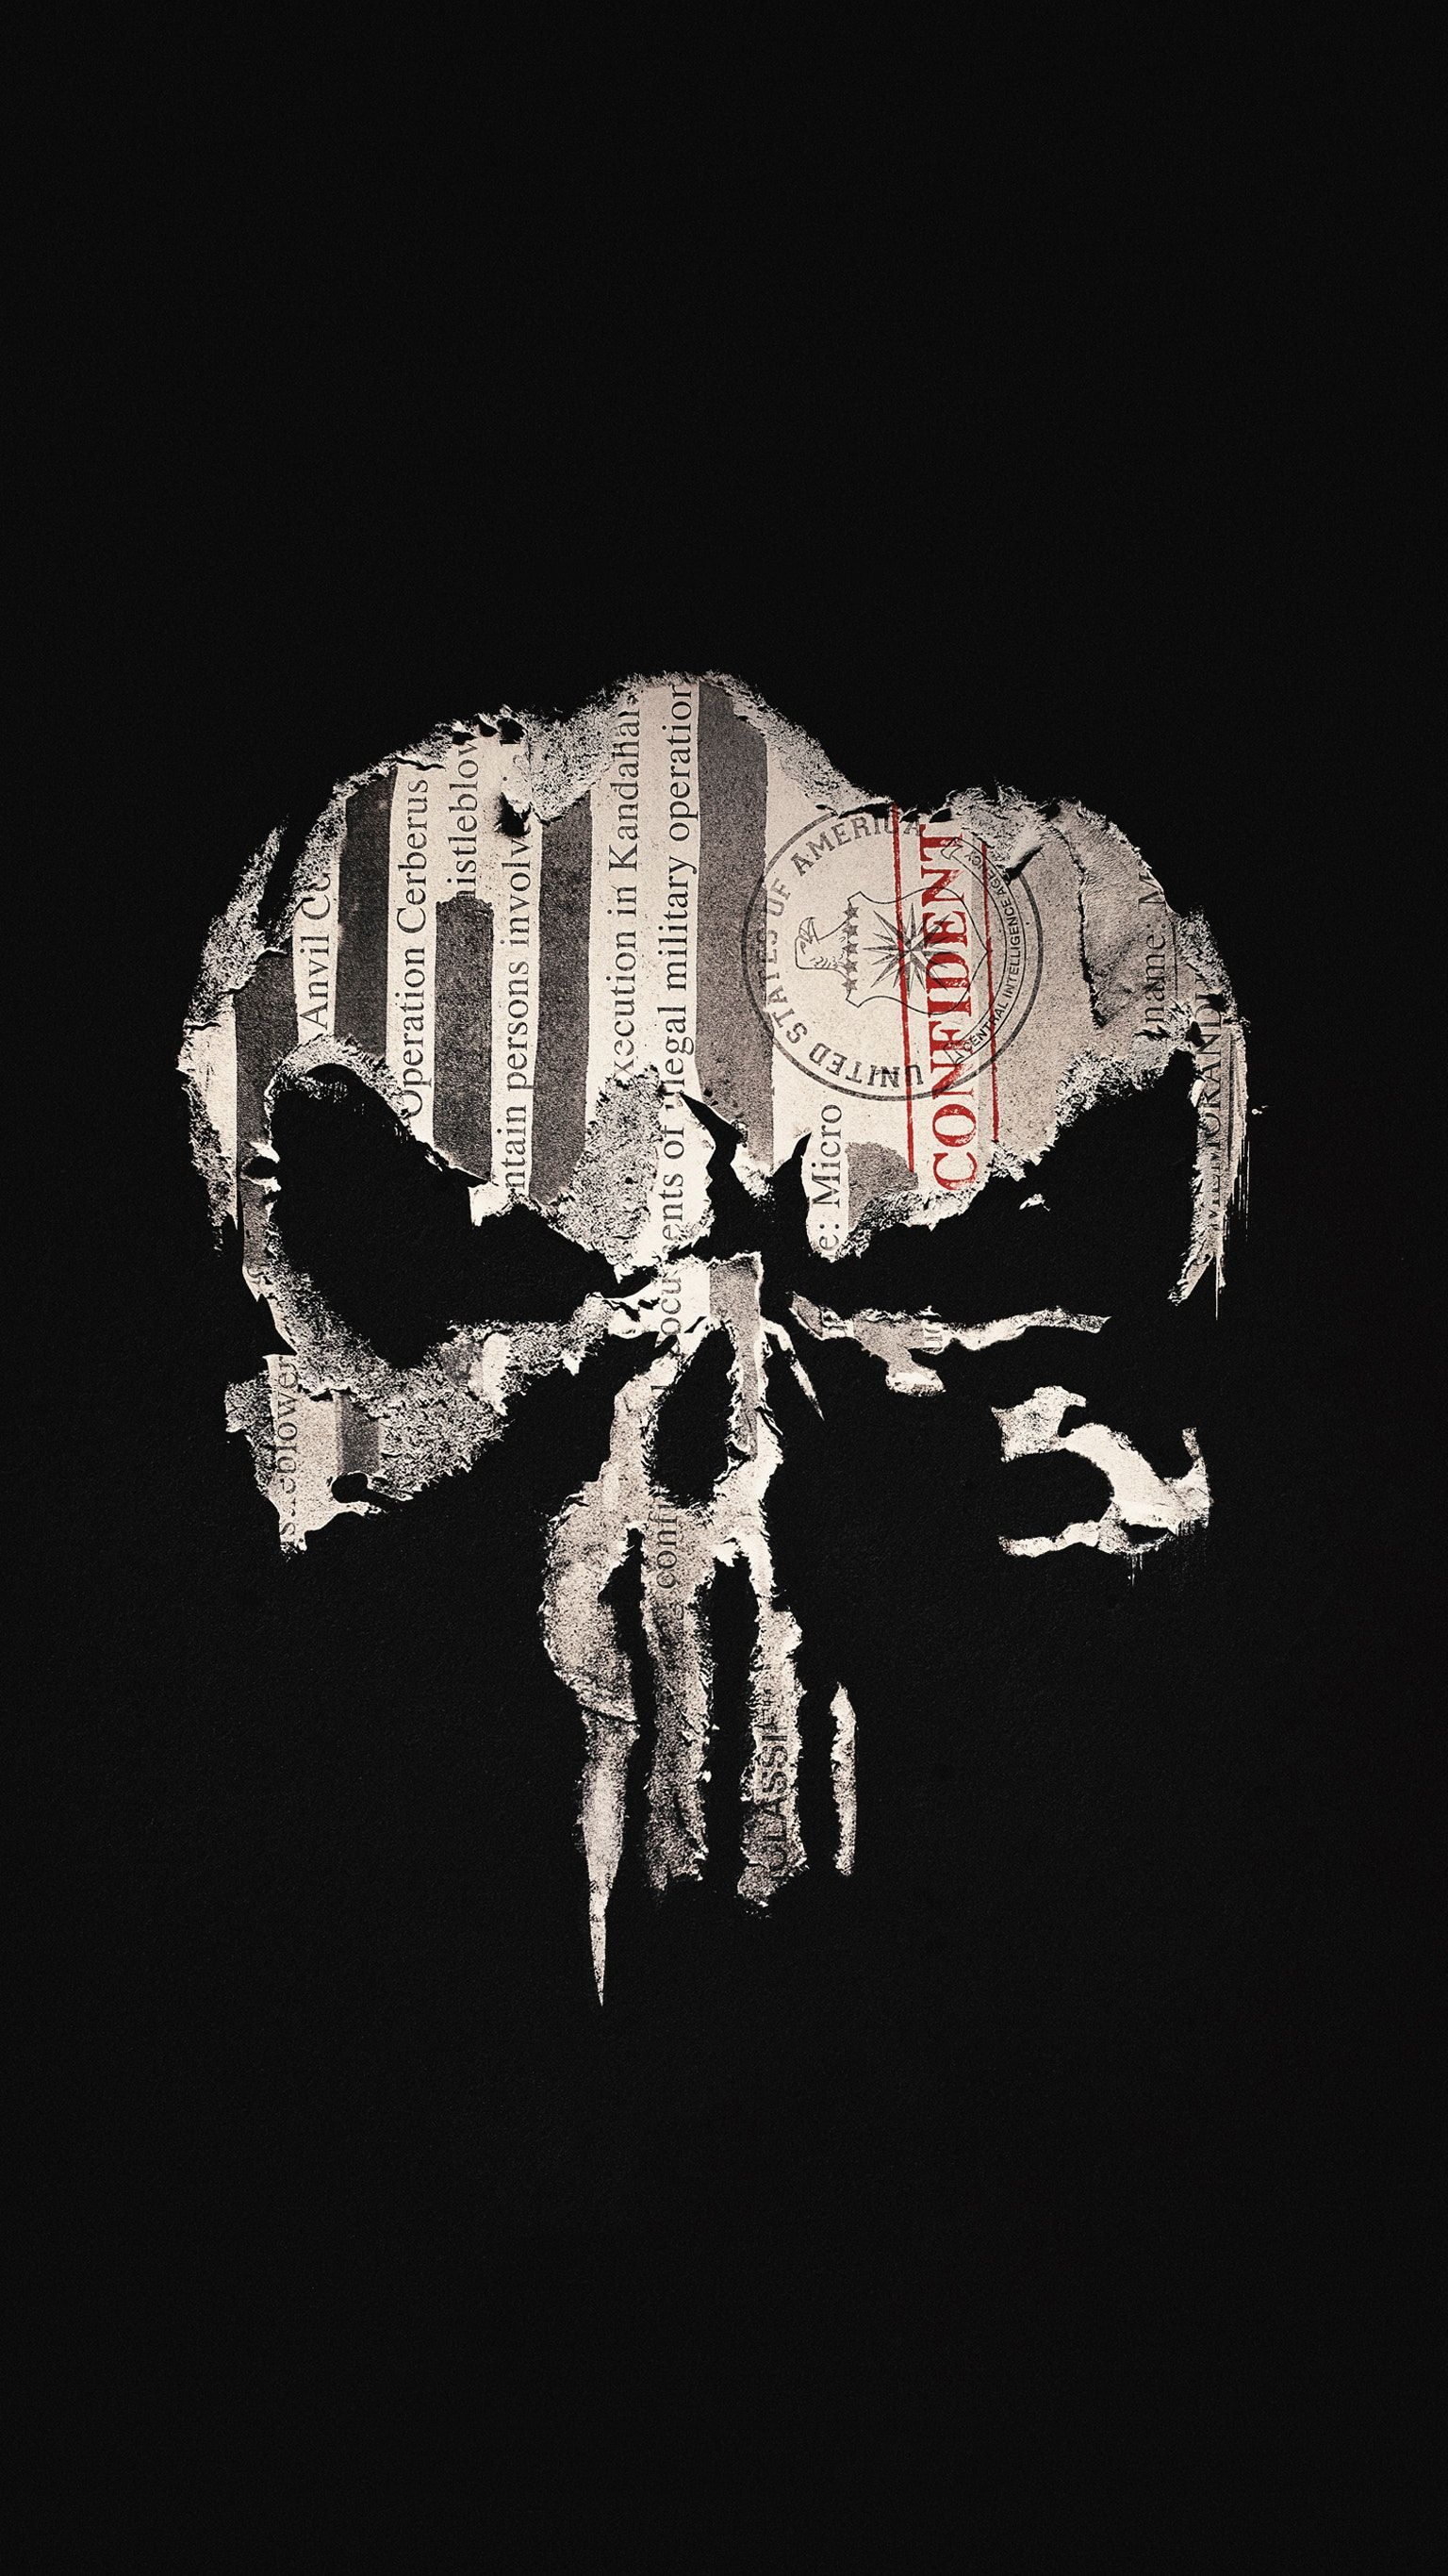 Punisher Police Wallpapers Top Free Punisher Police Backgrounds